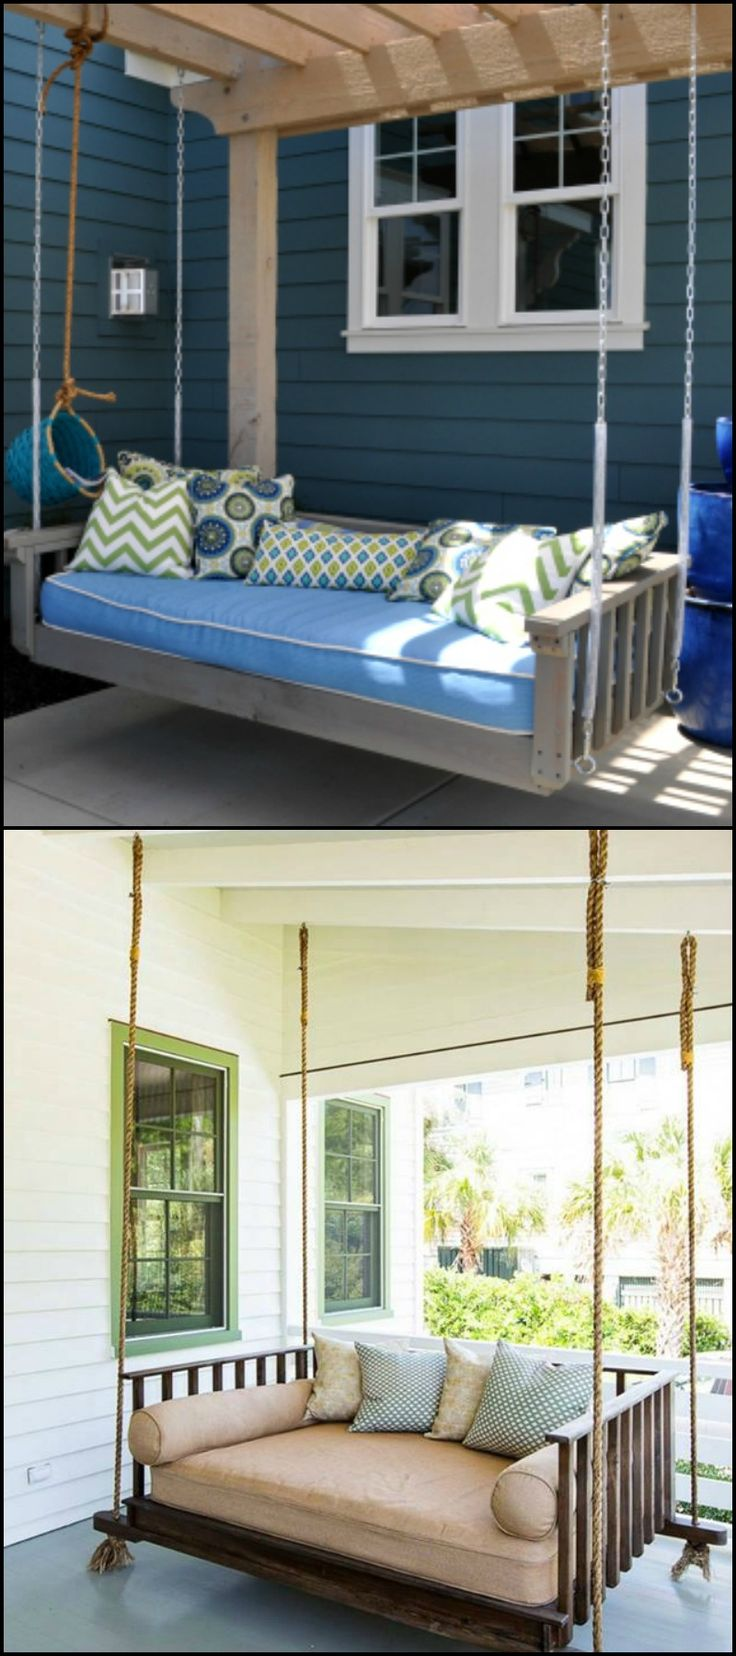 Ahh, a very relaxing hanging daybed! Is there anybody who doesn't want to have this piece of furniture in their outdoor area?  Building a hanging daybed isn't a quick weekend project. But anybody who's simply willing to squeeze in a couple of hours every day can make their own hanging daybed swing in a week! This DIY project doesn't require any special tools and skills.